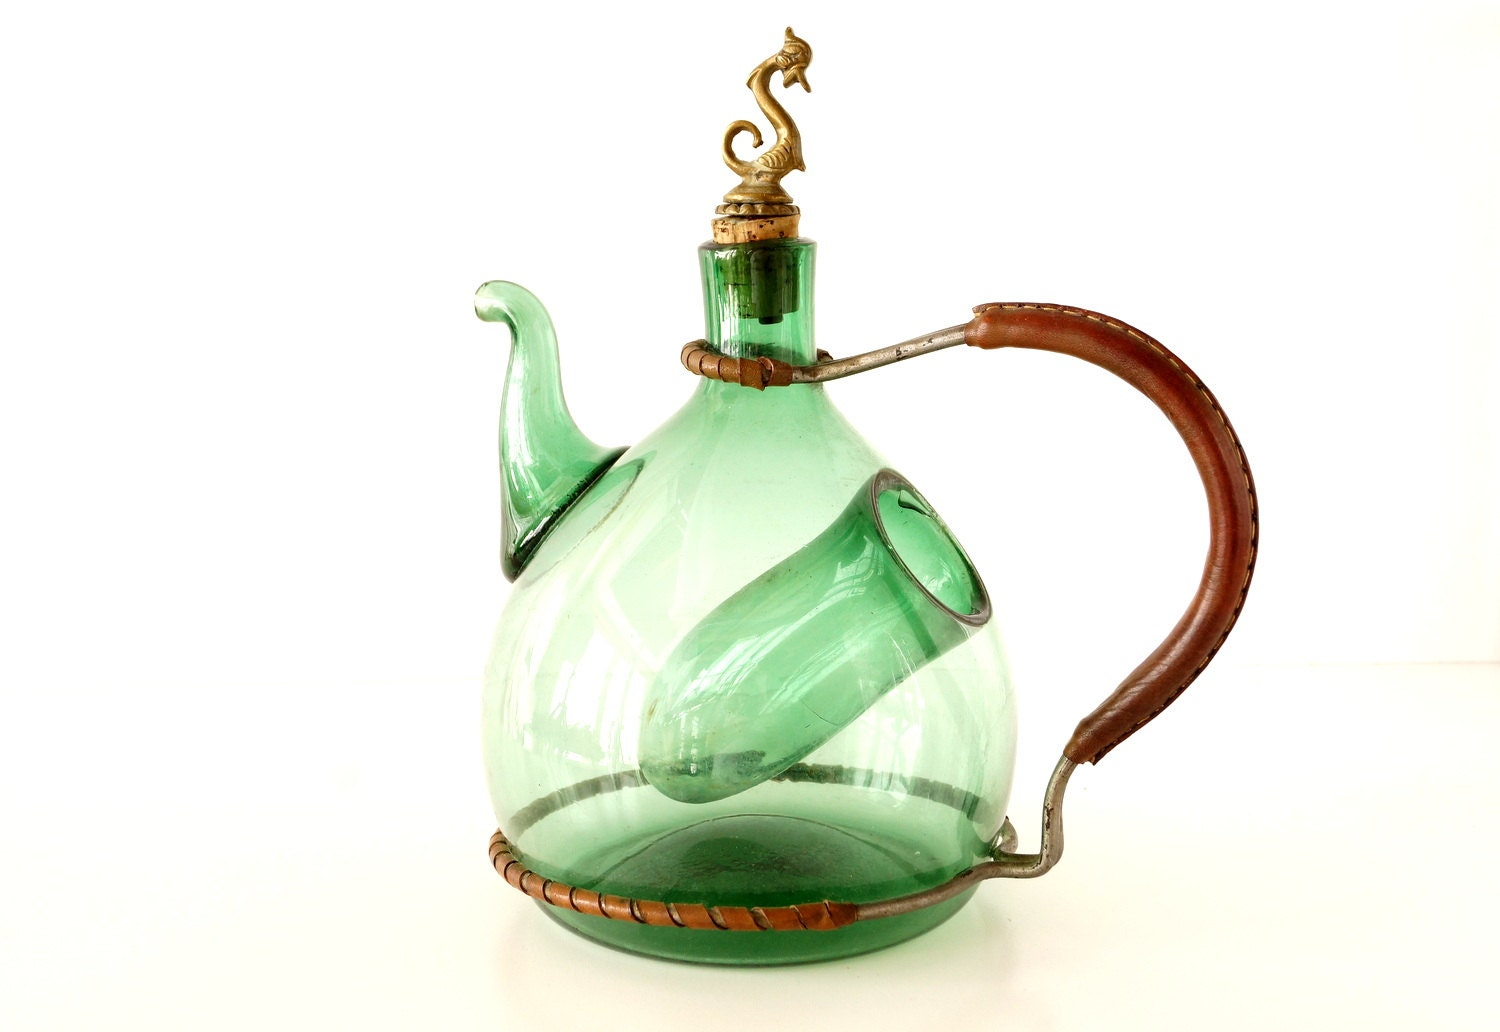 Vintage Italian Green Glass Wine Carafe with Metal and Leather Handle and Ice Chiller (Hand-Blown Glass) - ThirdShift